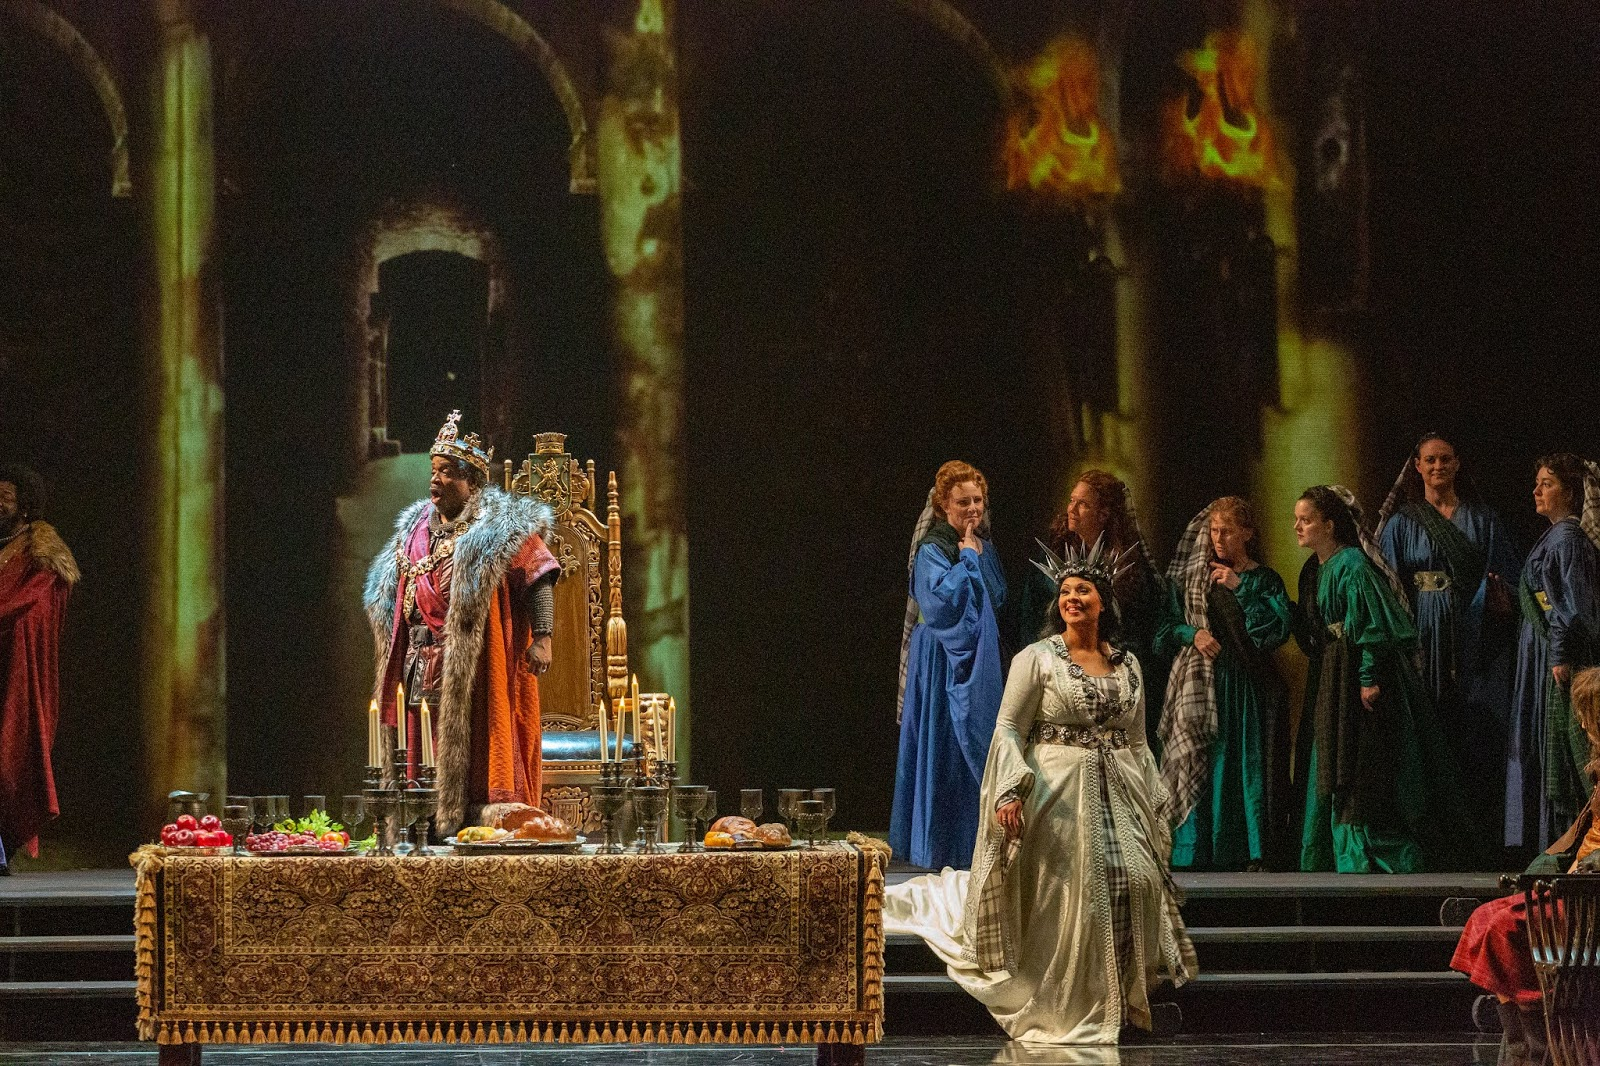 IN REVIEW: baritone MARK RUCKER as Macbeth (left) and soprano OTHALIE GRAHAM as Lady Macbeth (right) in Opera Carolina's November 2019 production of Giuseppe Verdi's MACBETH [Photograph by Mitchell Kearney, © by Opera Carolina]